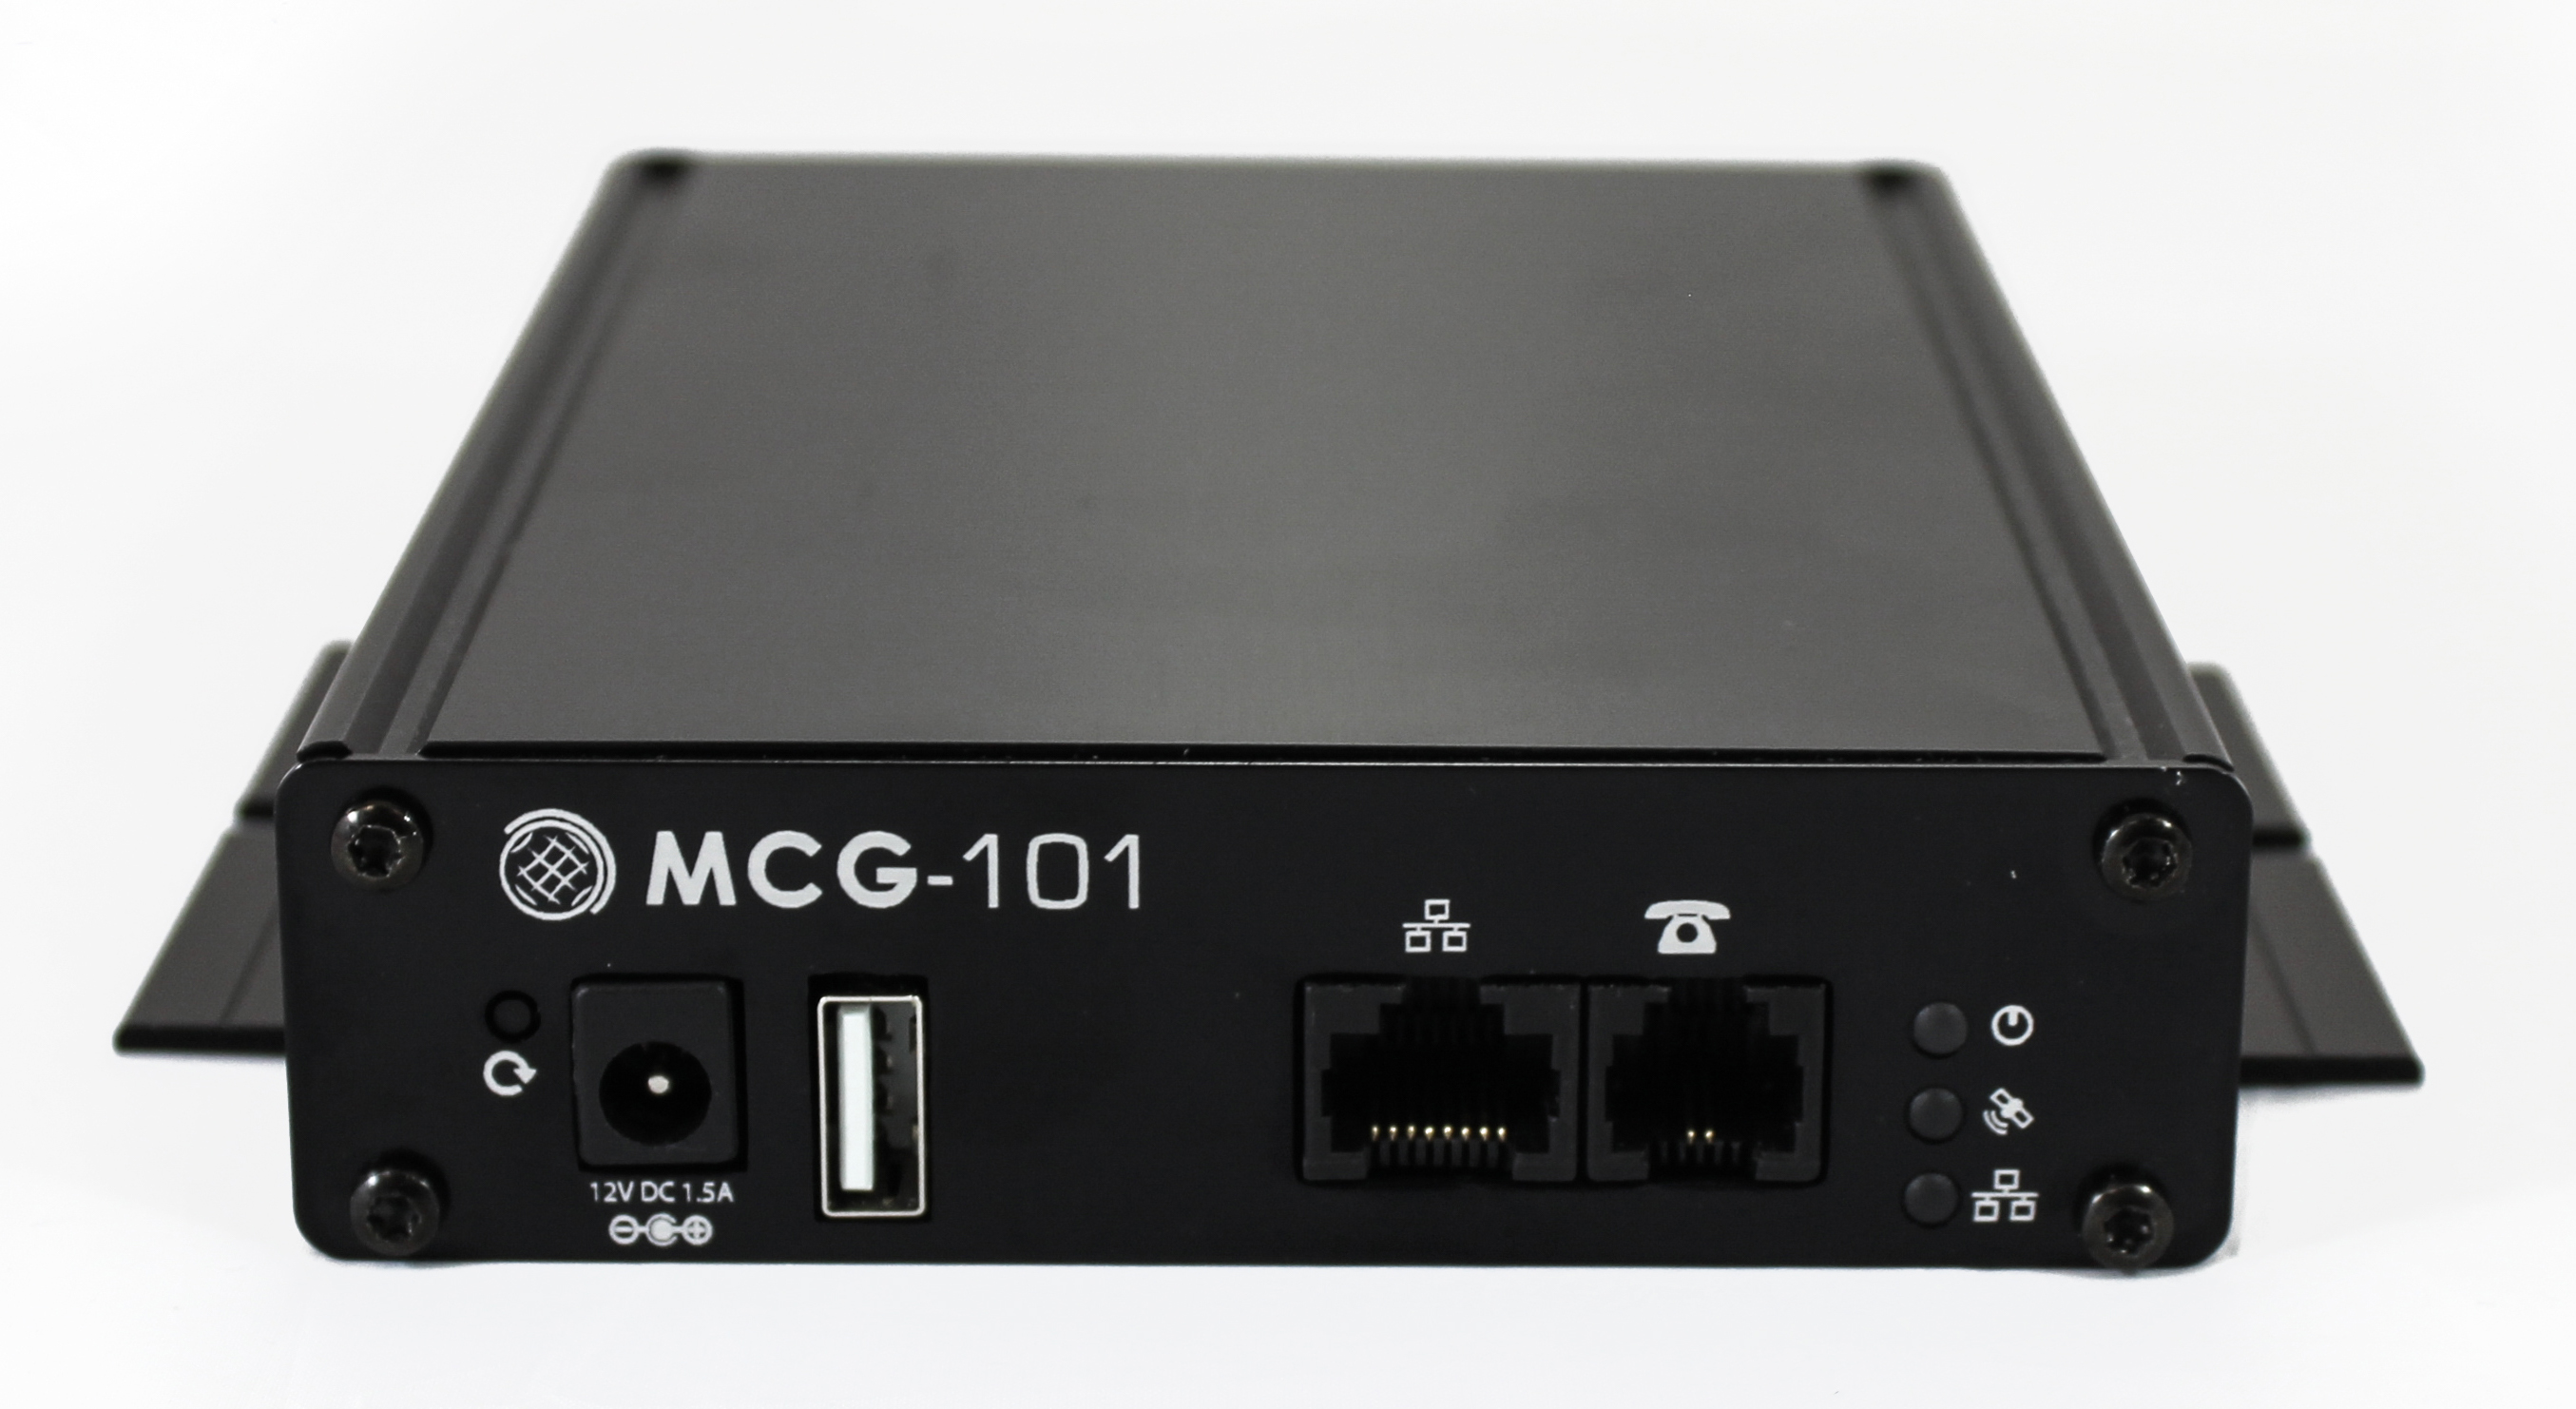 MCG-101 Front & Top View no Antennas